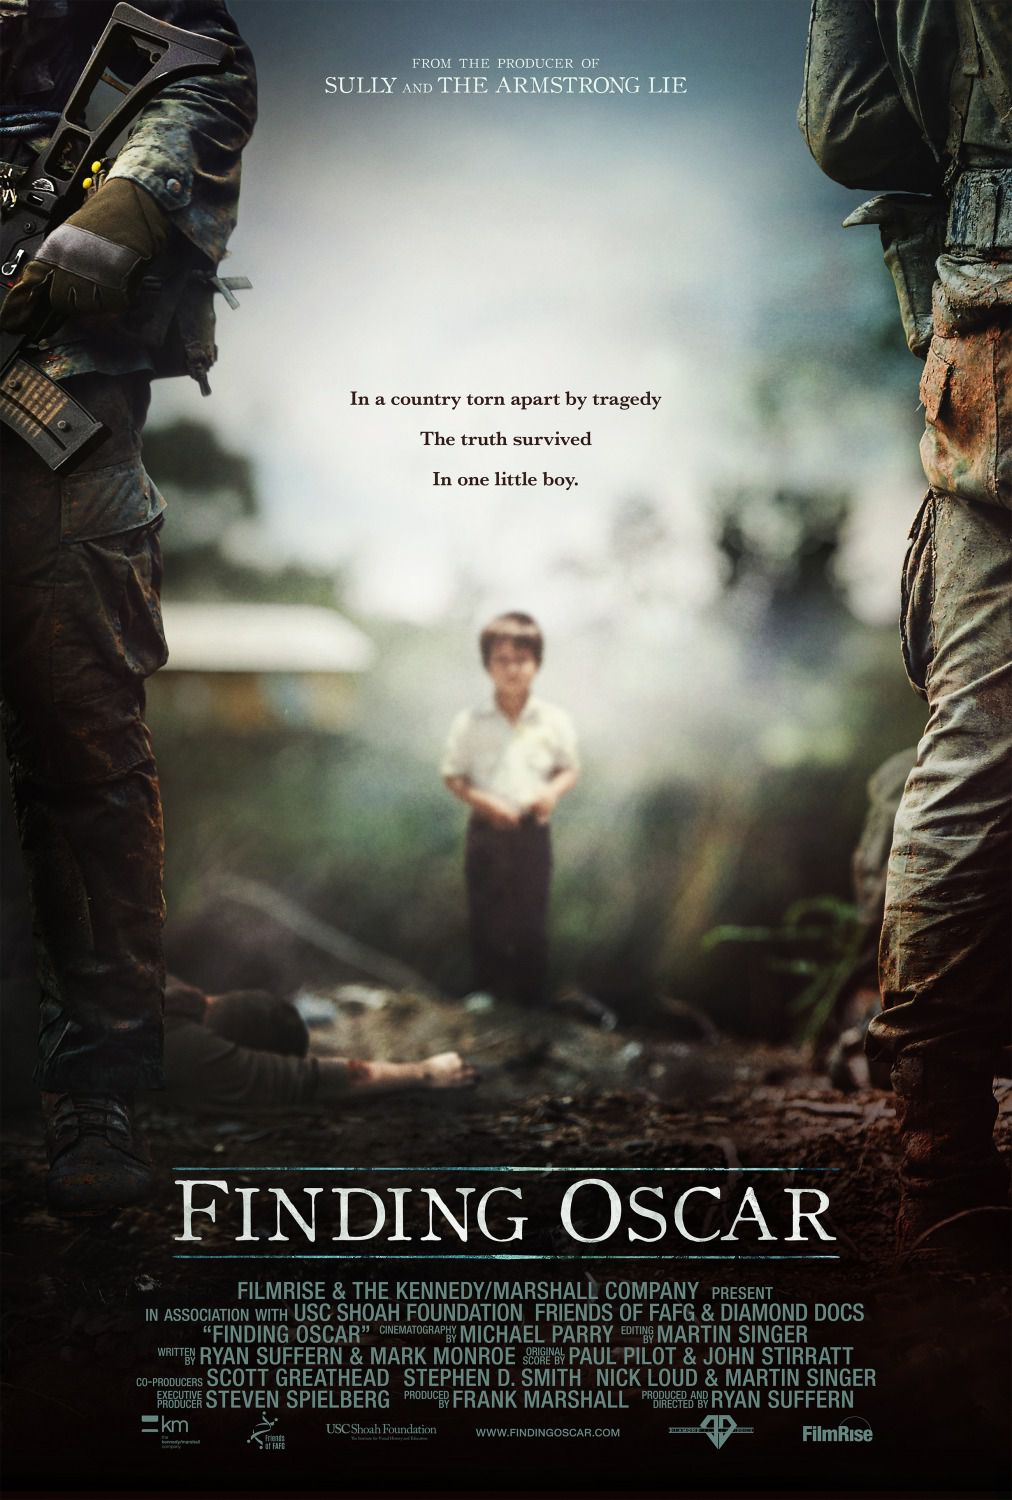 Finding Oscar - in a Country torn apart by tragedy the truth survived in one little boy